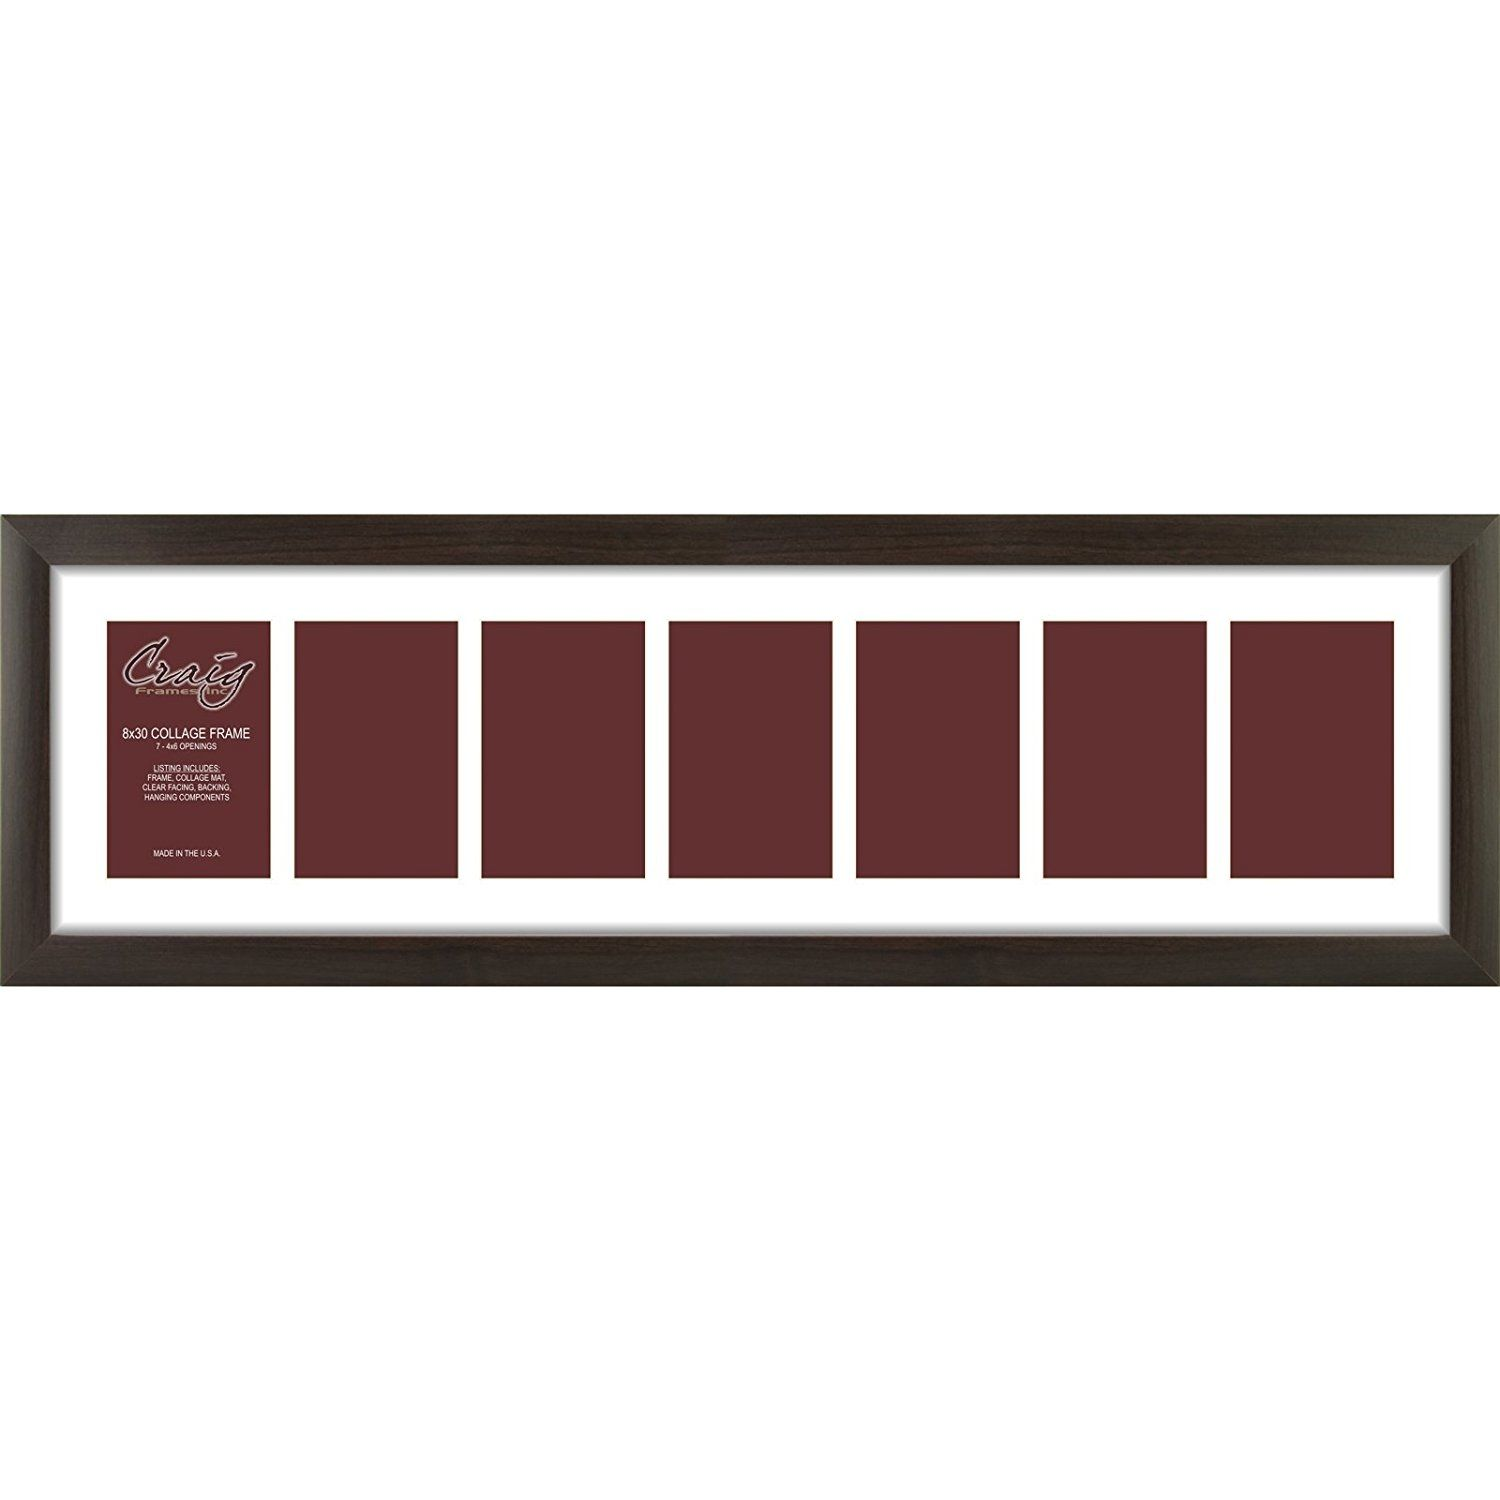 Craig Frames 23247778 8 by 30-Inch Brazilian Walnut Picture Frame ...